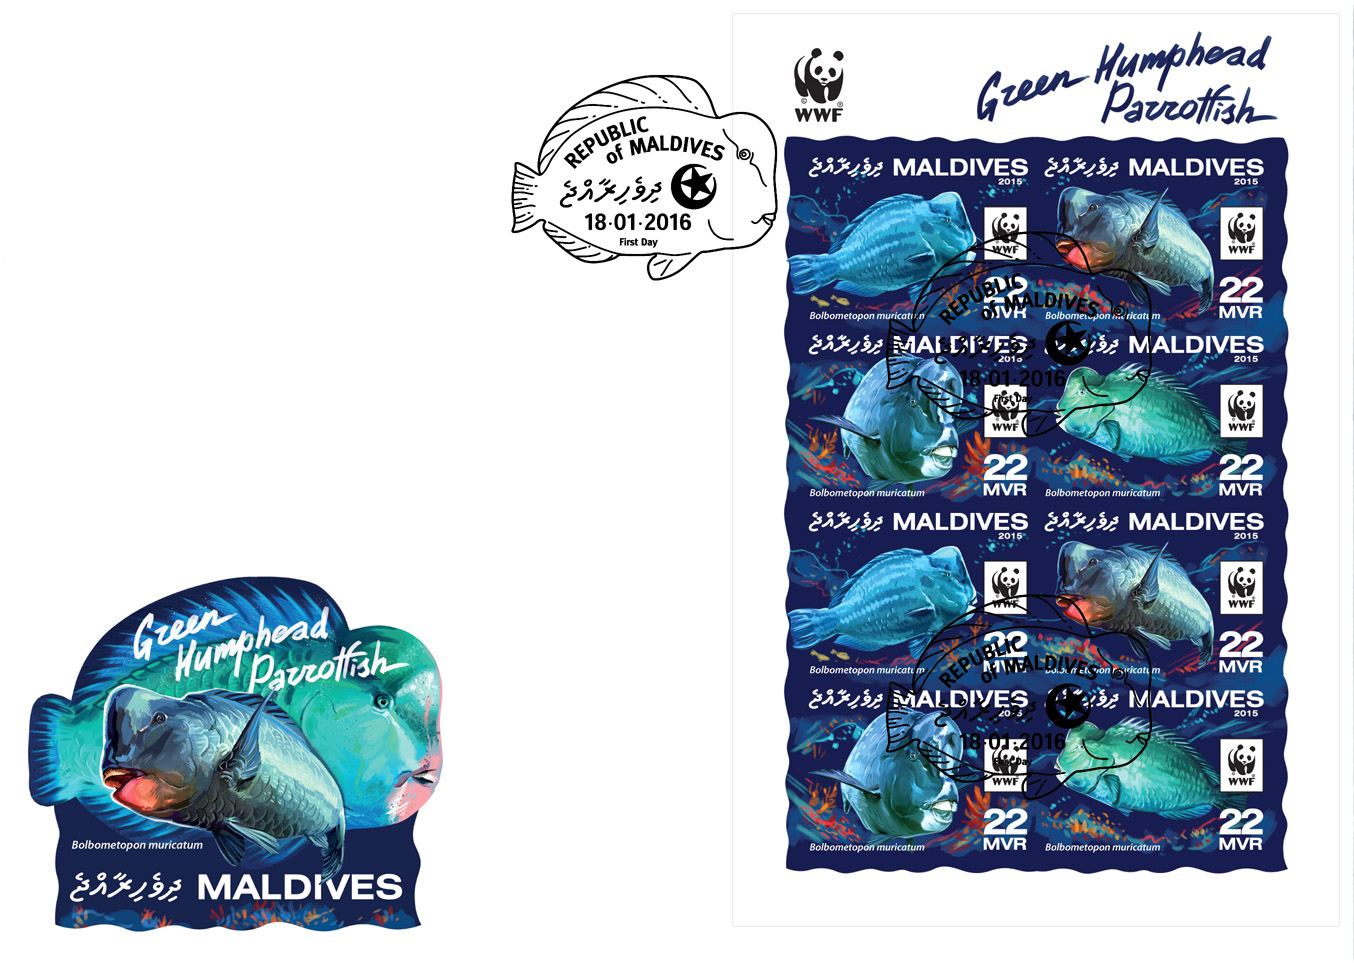 WWF – Parrotfish (FDC imperf.) - Issue of Maldives postage stamps